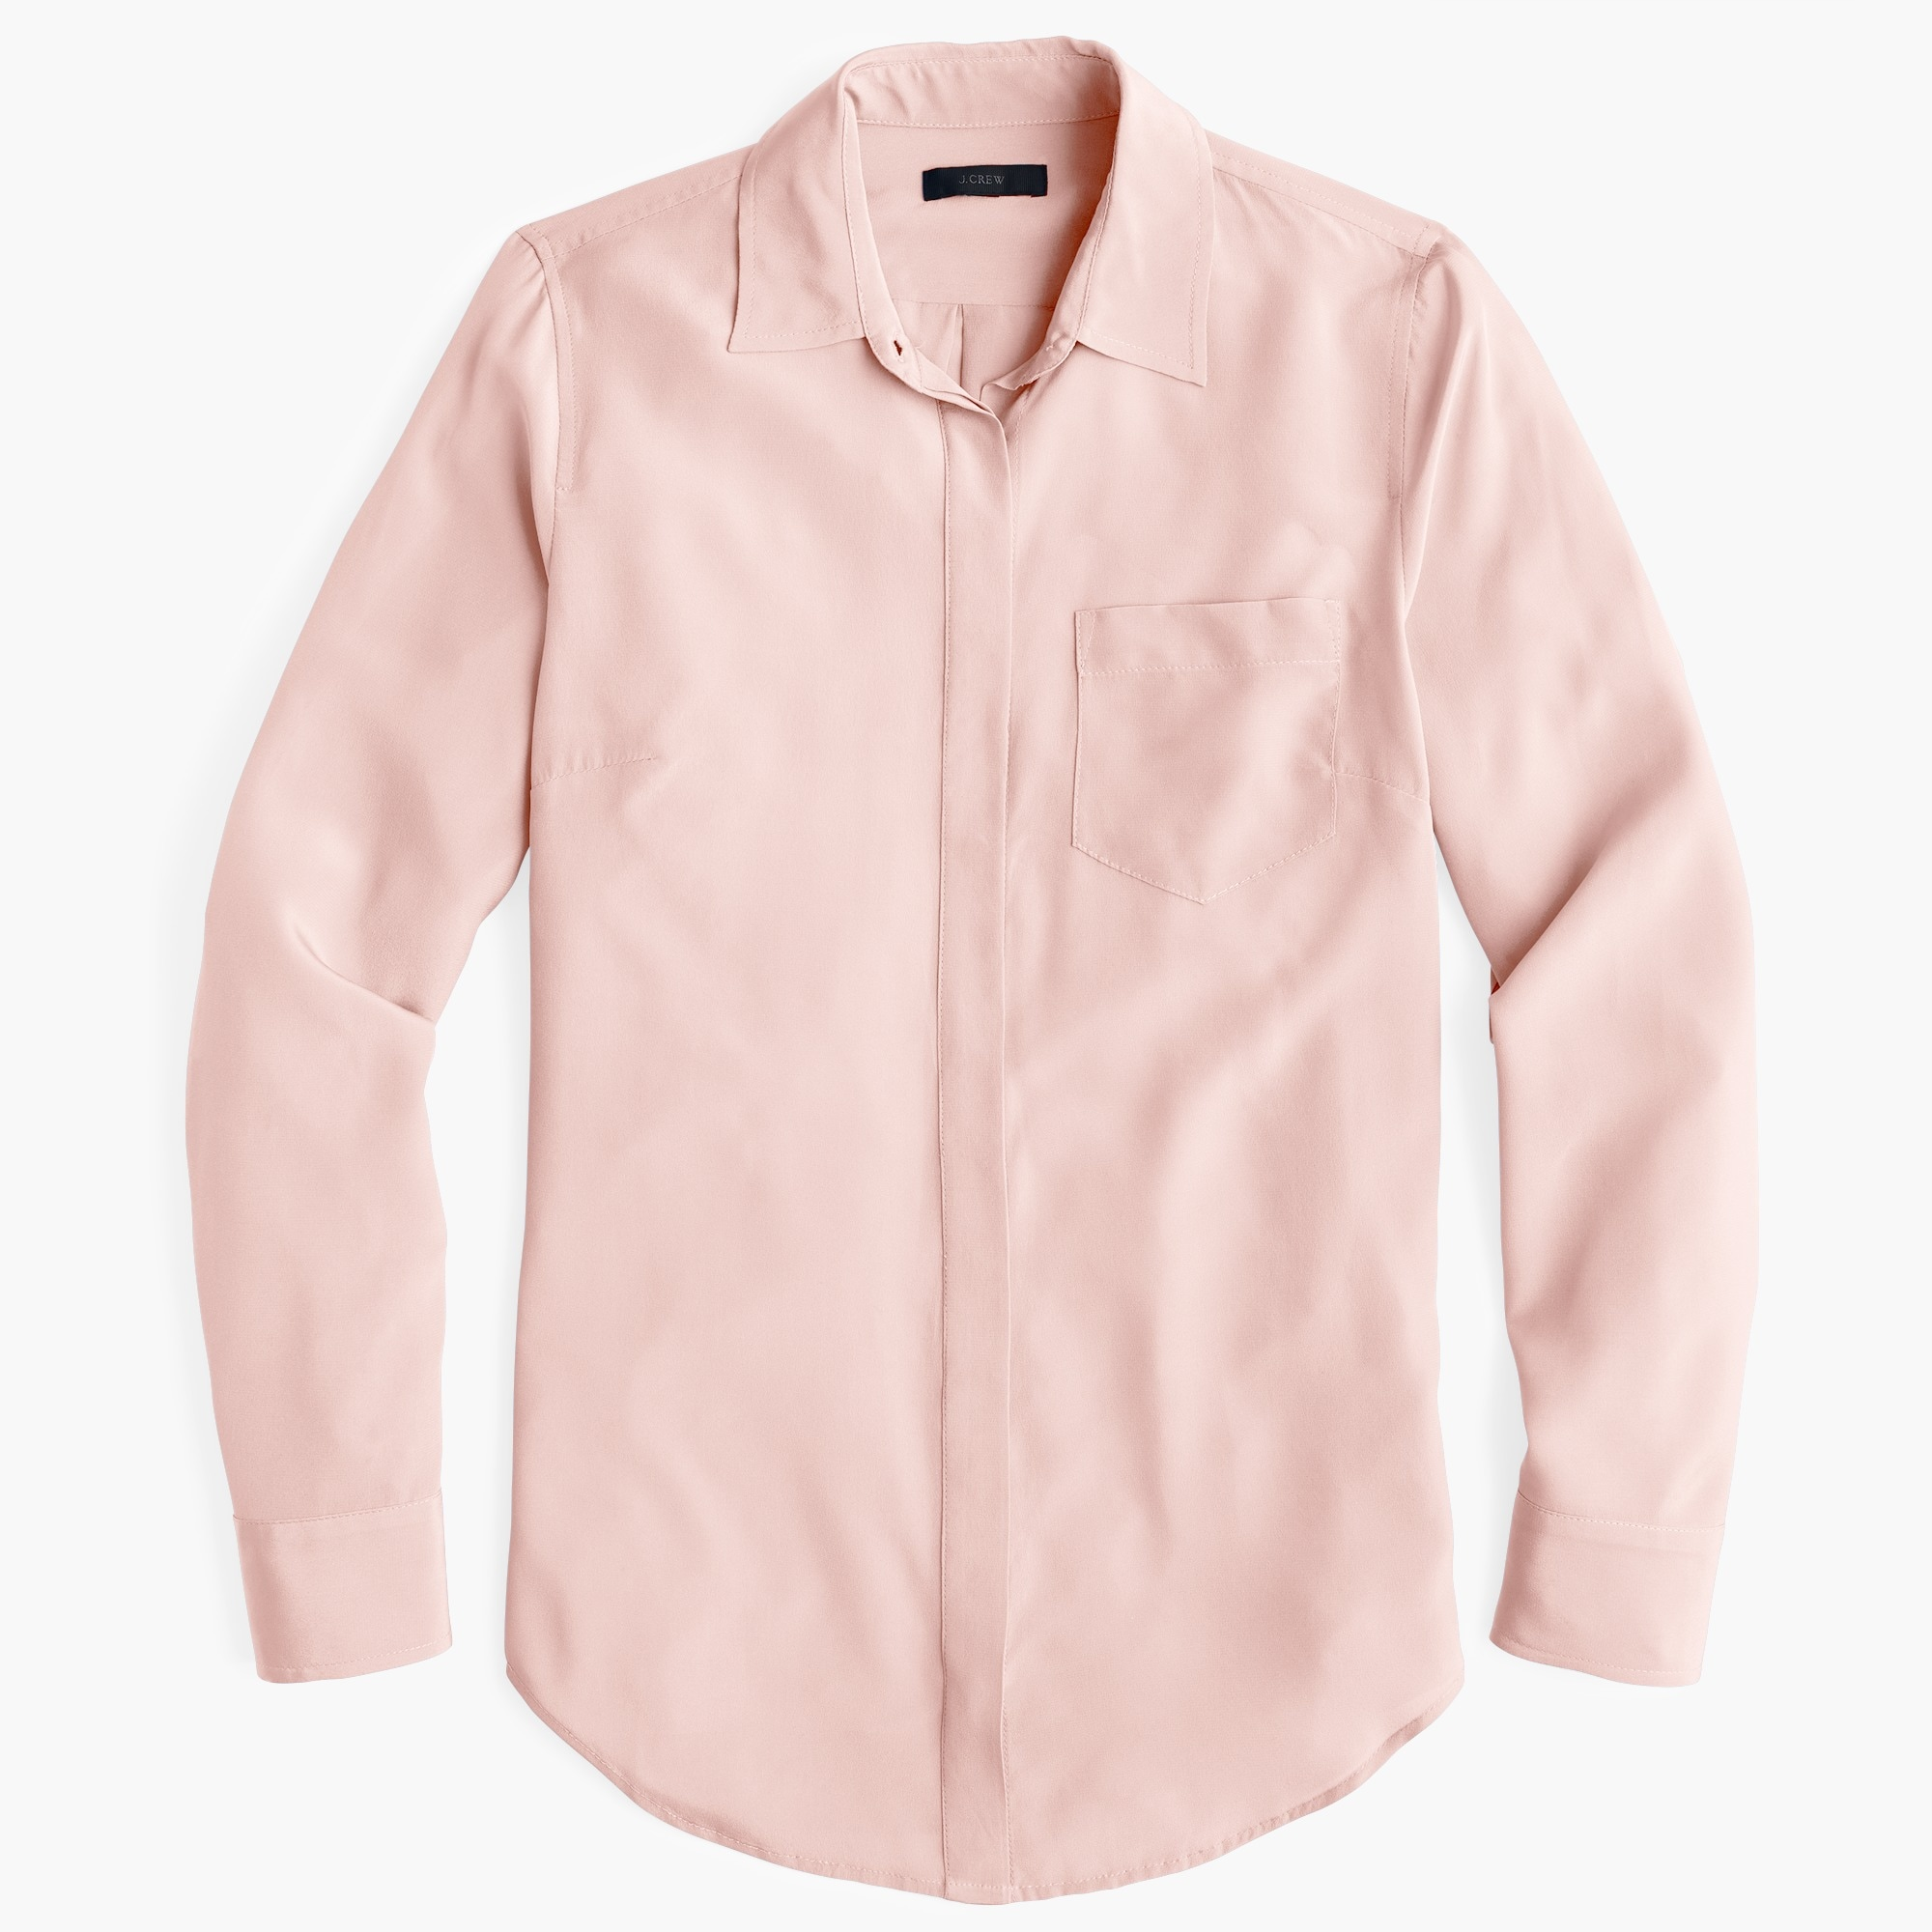 Image 1 for Tall silk button-up shirt